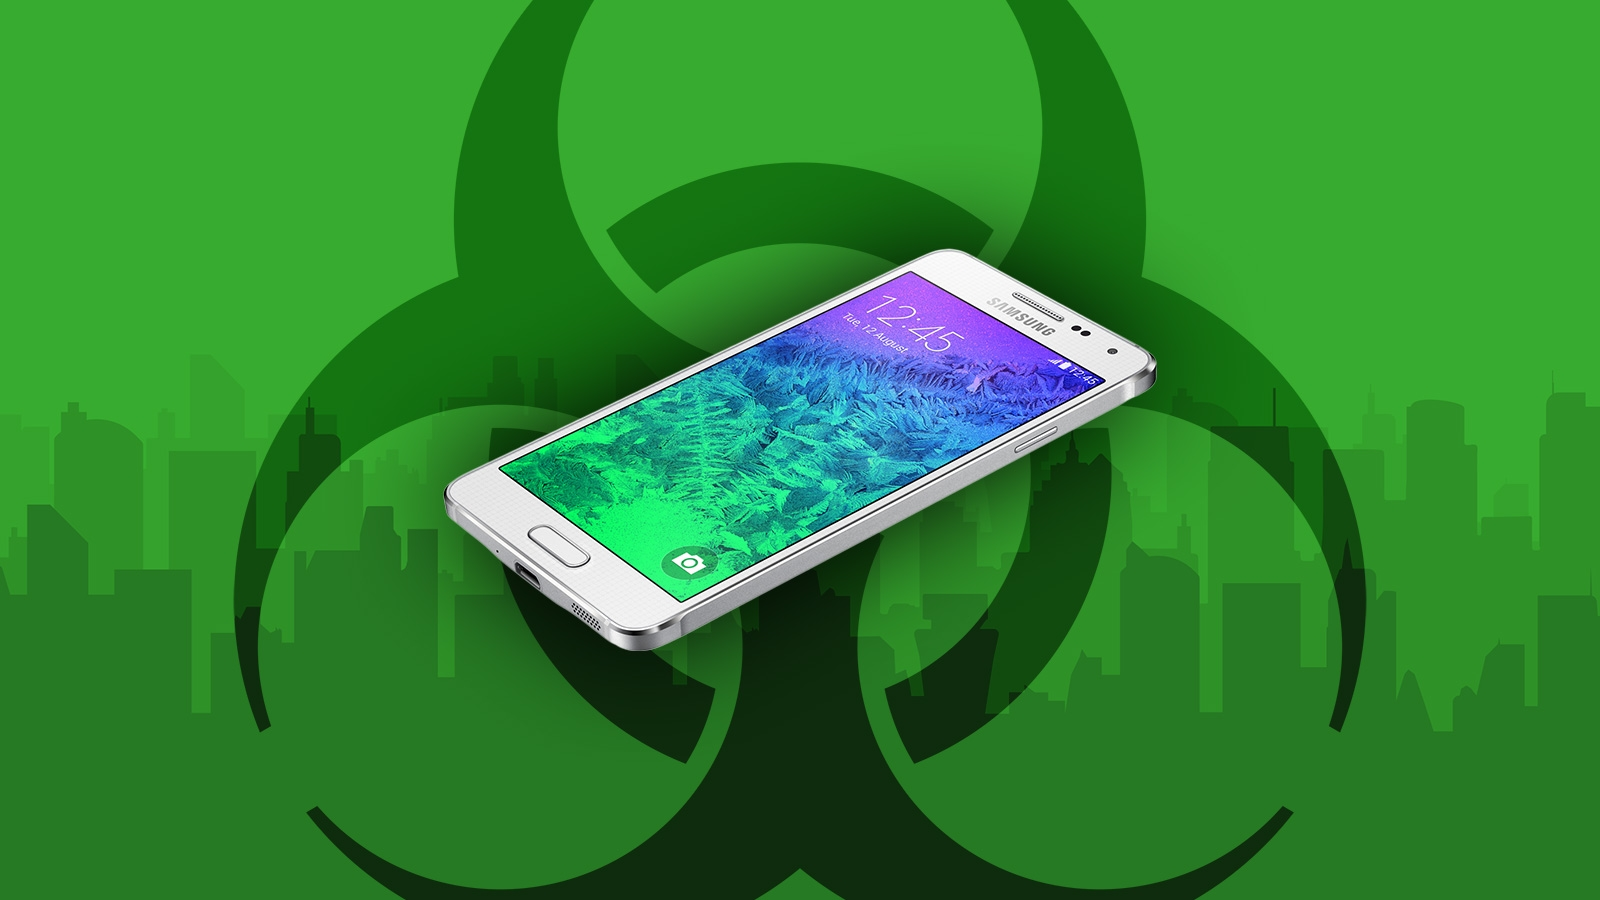 android malware verde